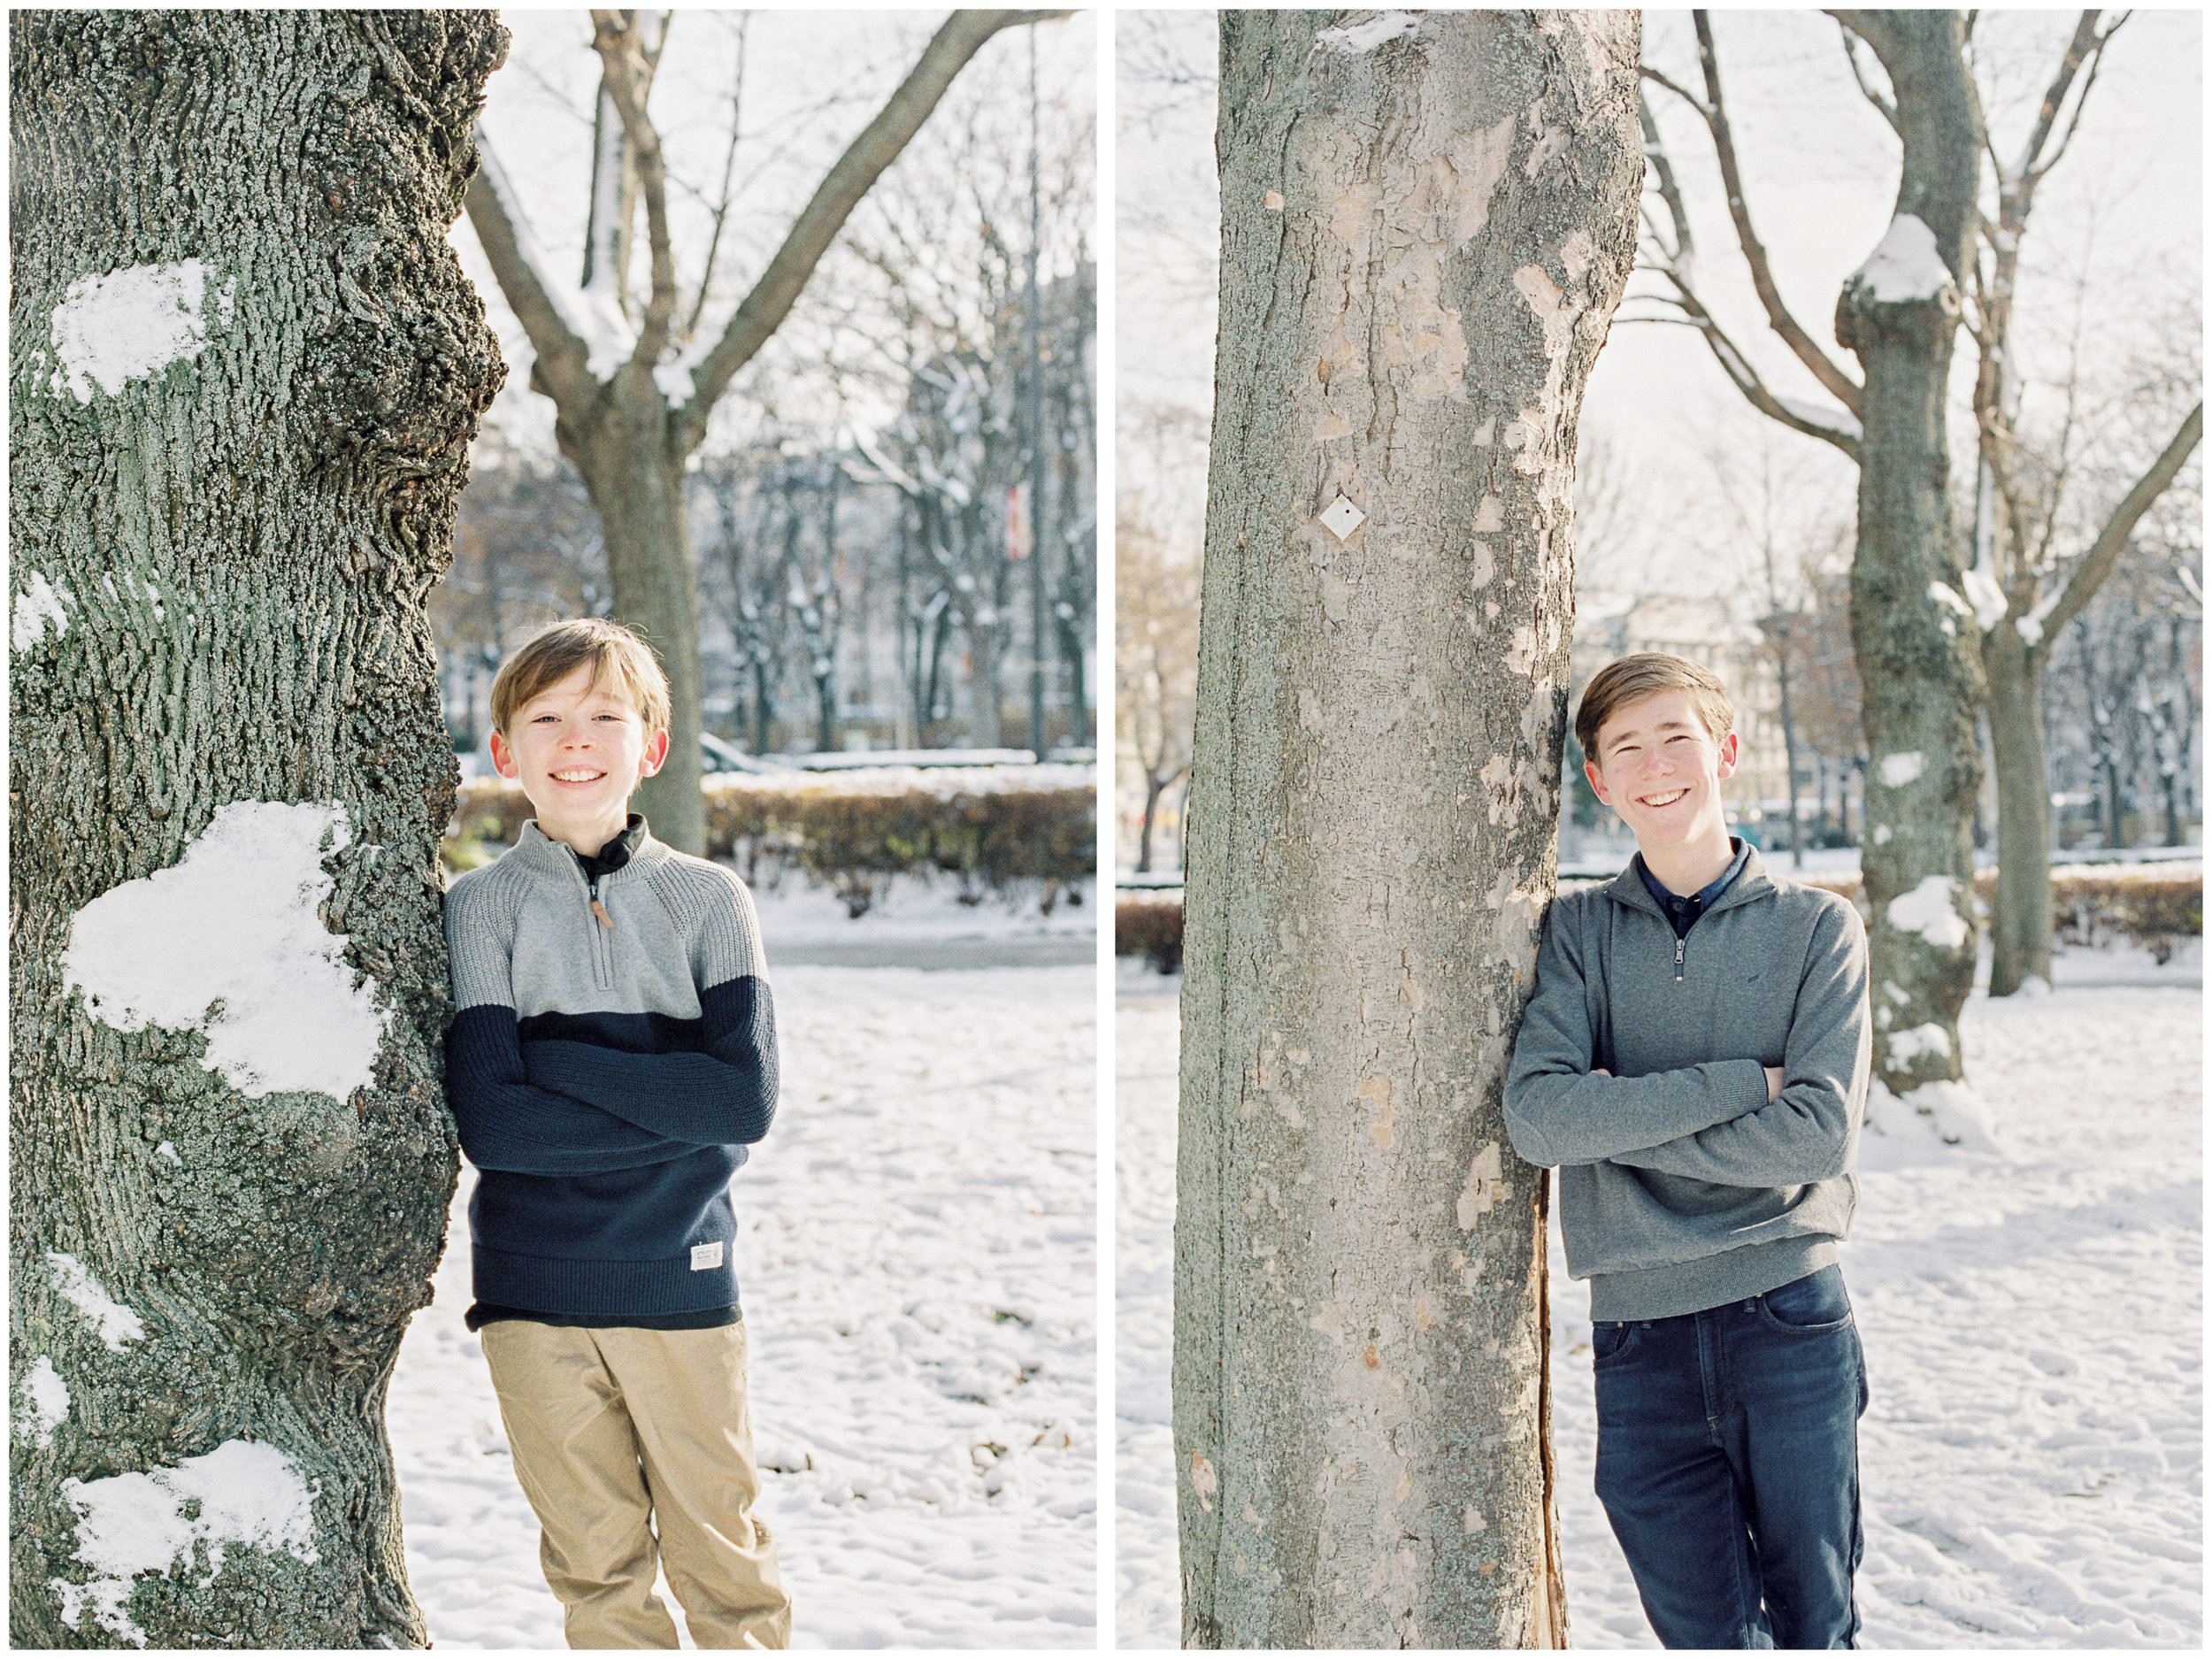 Vienna, Austria | Contax 645 | Fuji400 film | Michelle Mock Photography | Portrait Film Photographer | Winter Family Session